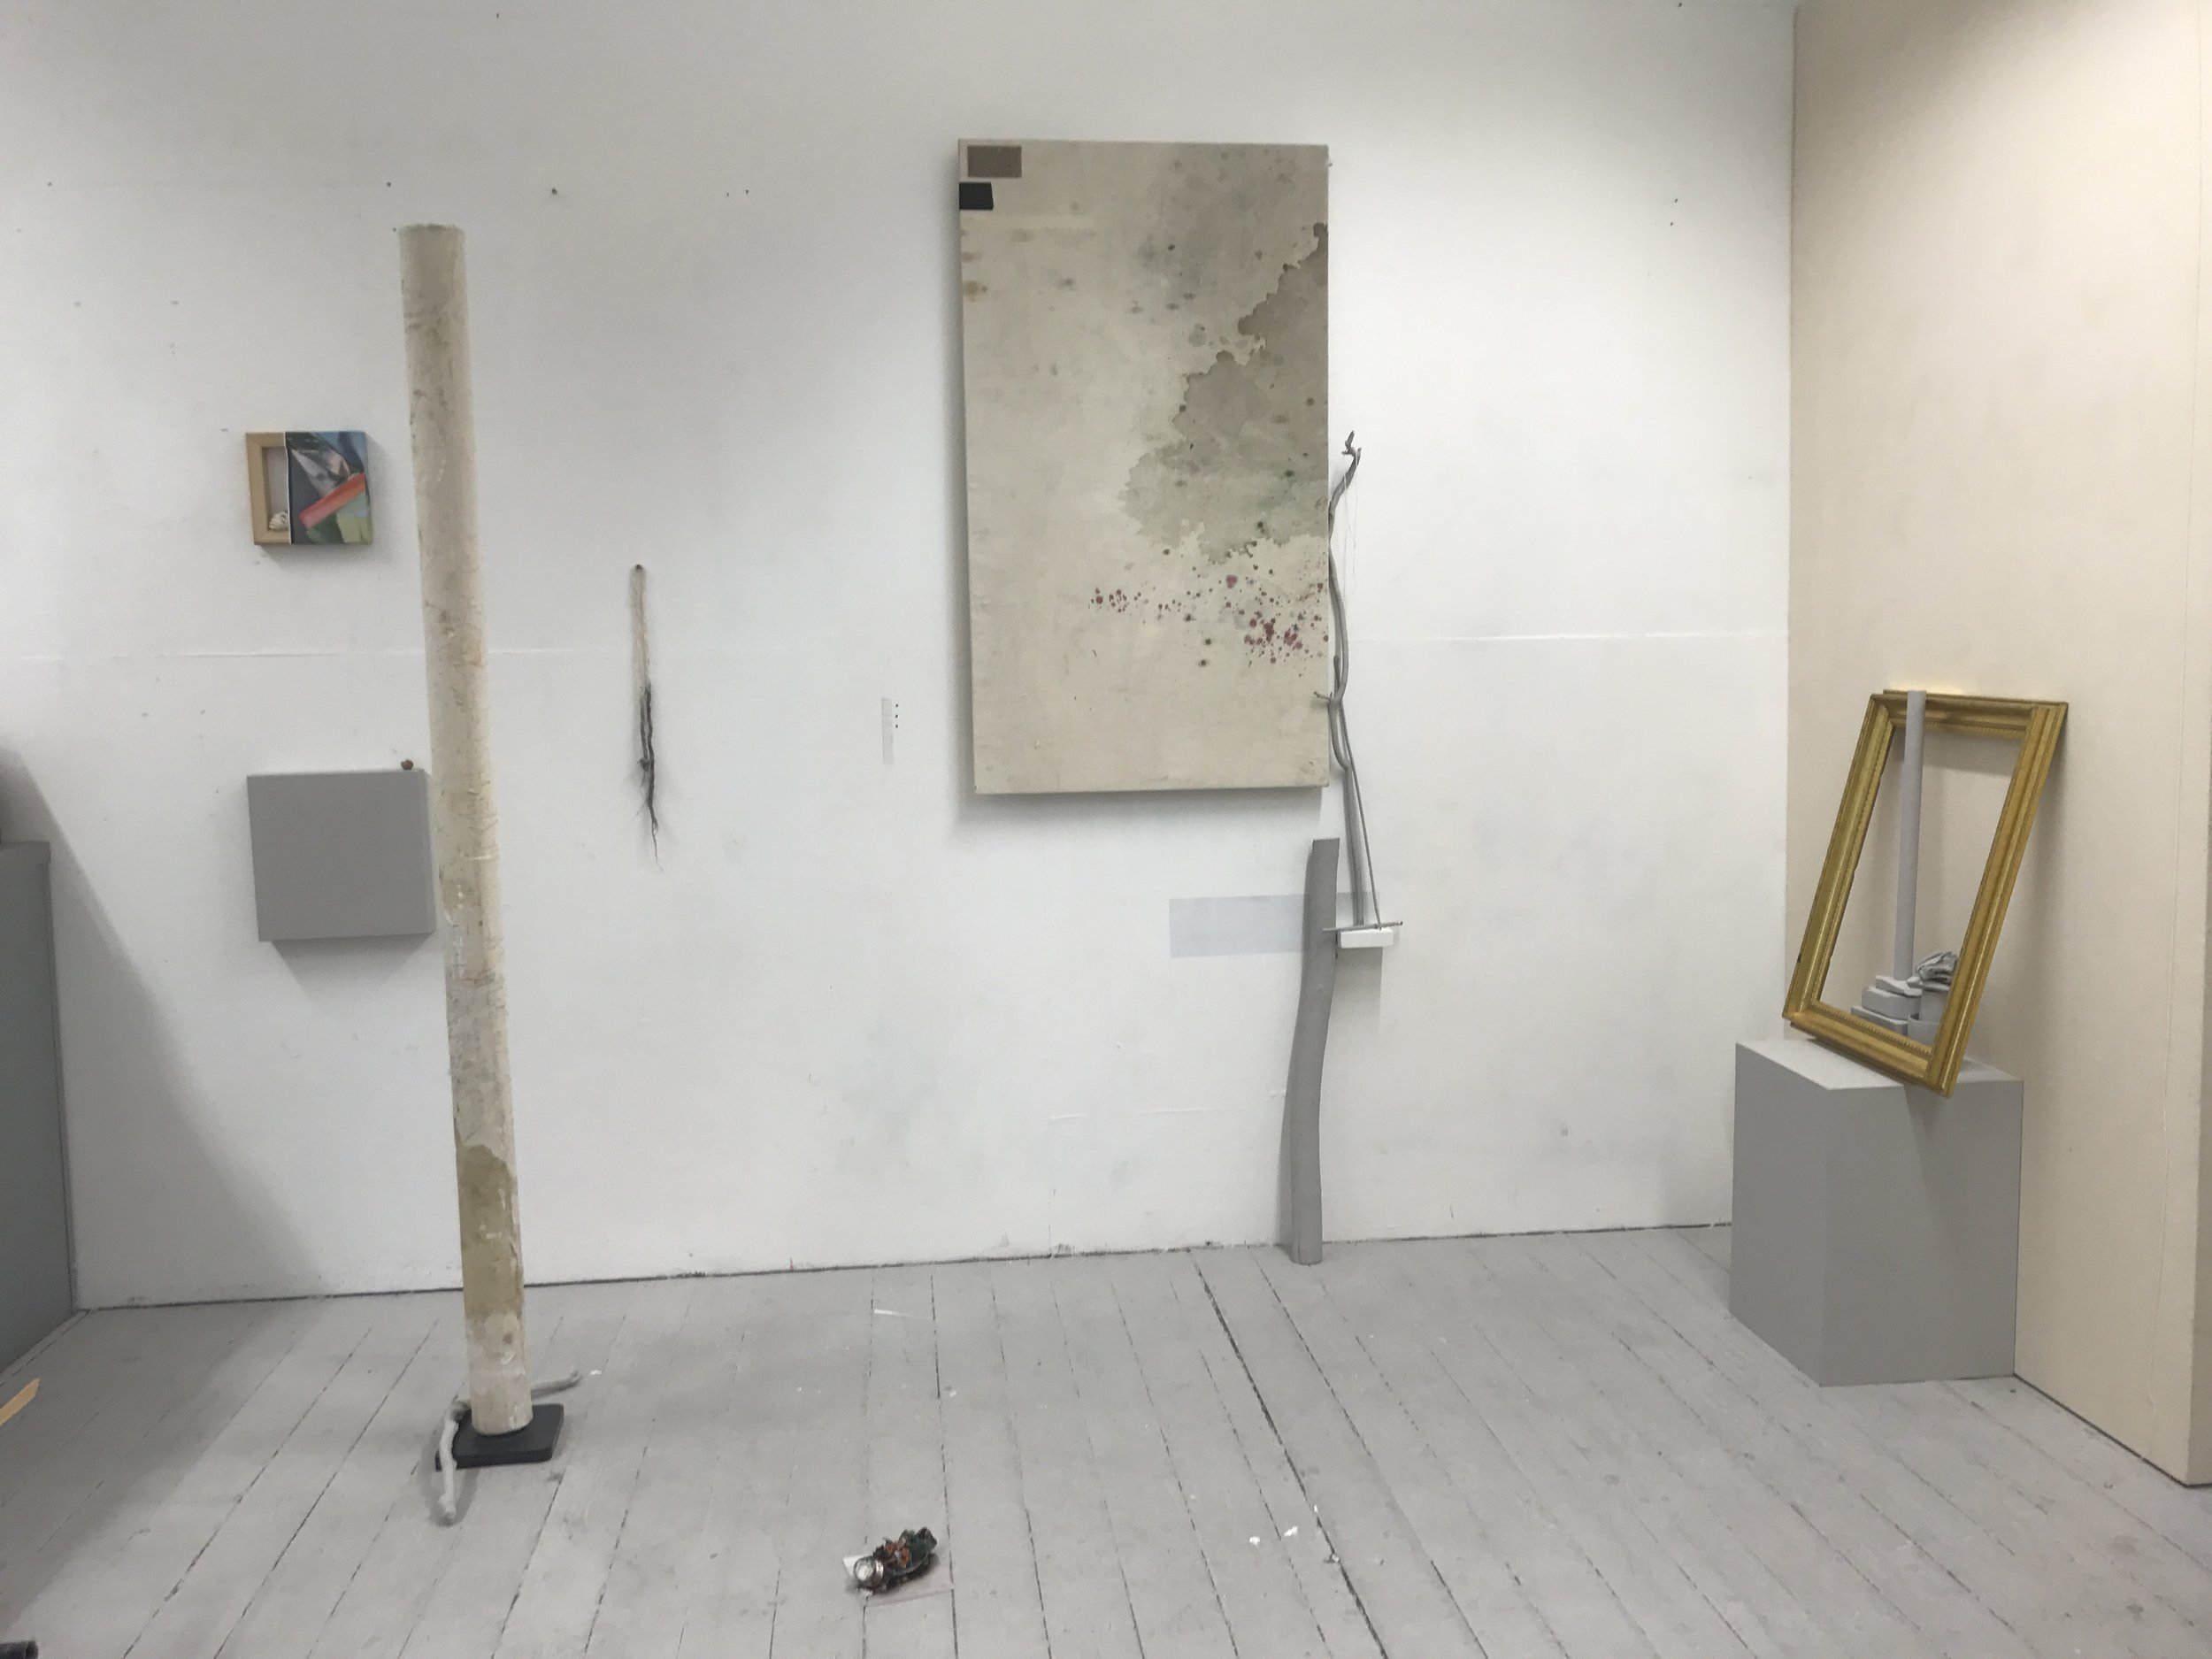 Ally McGinn (2017) Studio view.  Final set-up for the week. My plan is to explore photos of this set-up over the weekend to decide on the final adjusments before crit on Monday.  EDIT - I changed a few elements, taking the two paintings on the left off the wall, I placed them on the floor. I added a pencil line on the wall and to  Reflection.  Which I think finishes the piece. I also added three drill holes to the wall, which look unintentional but are completely aesthetic.